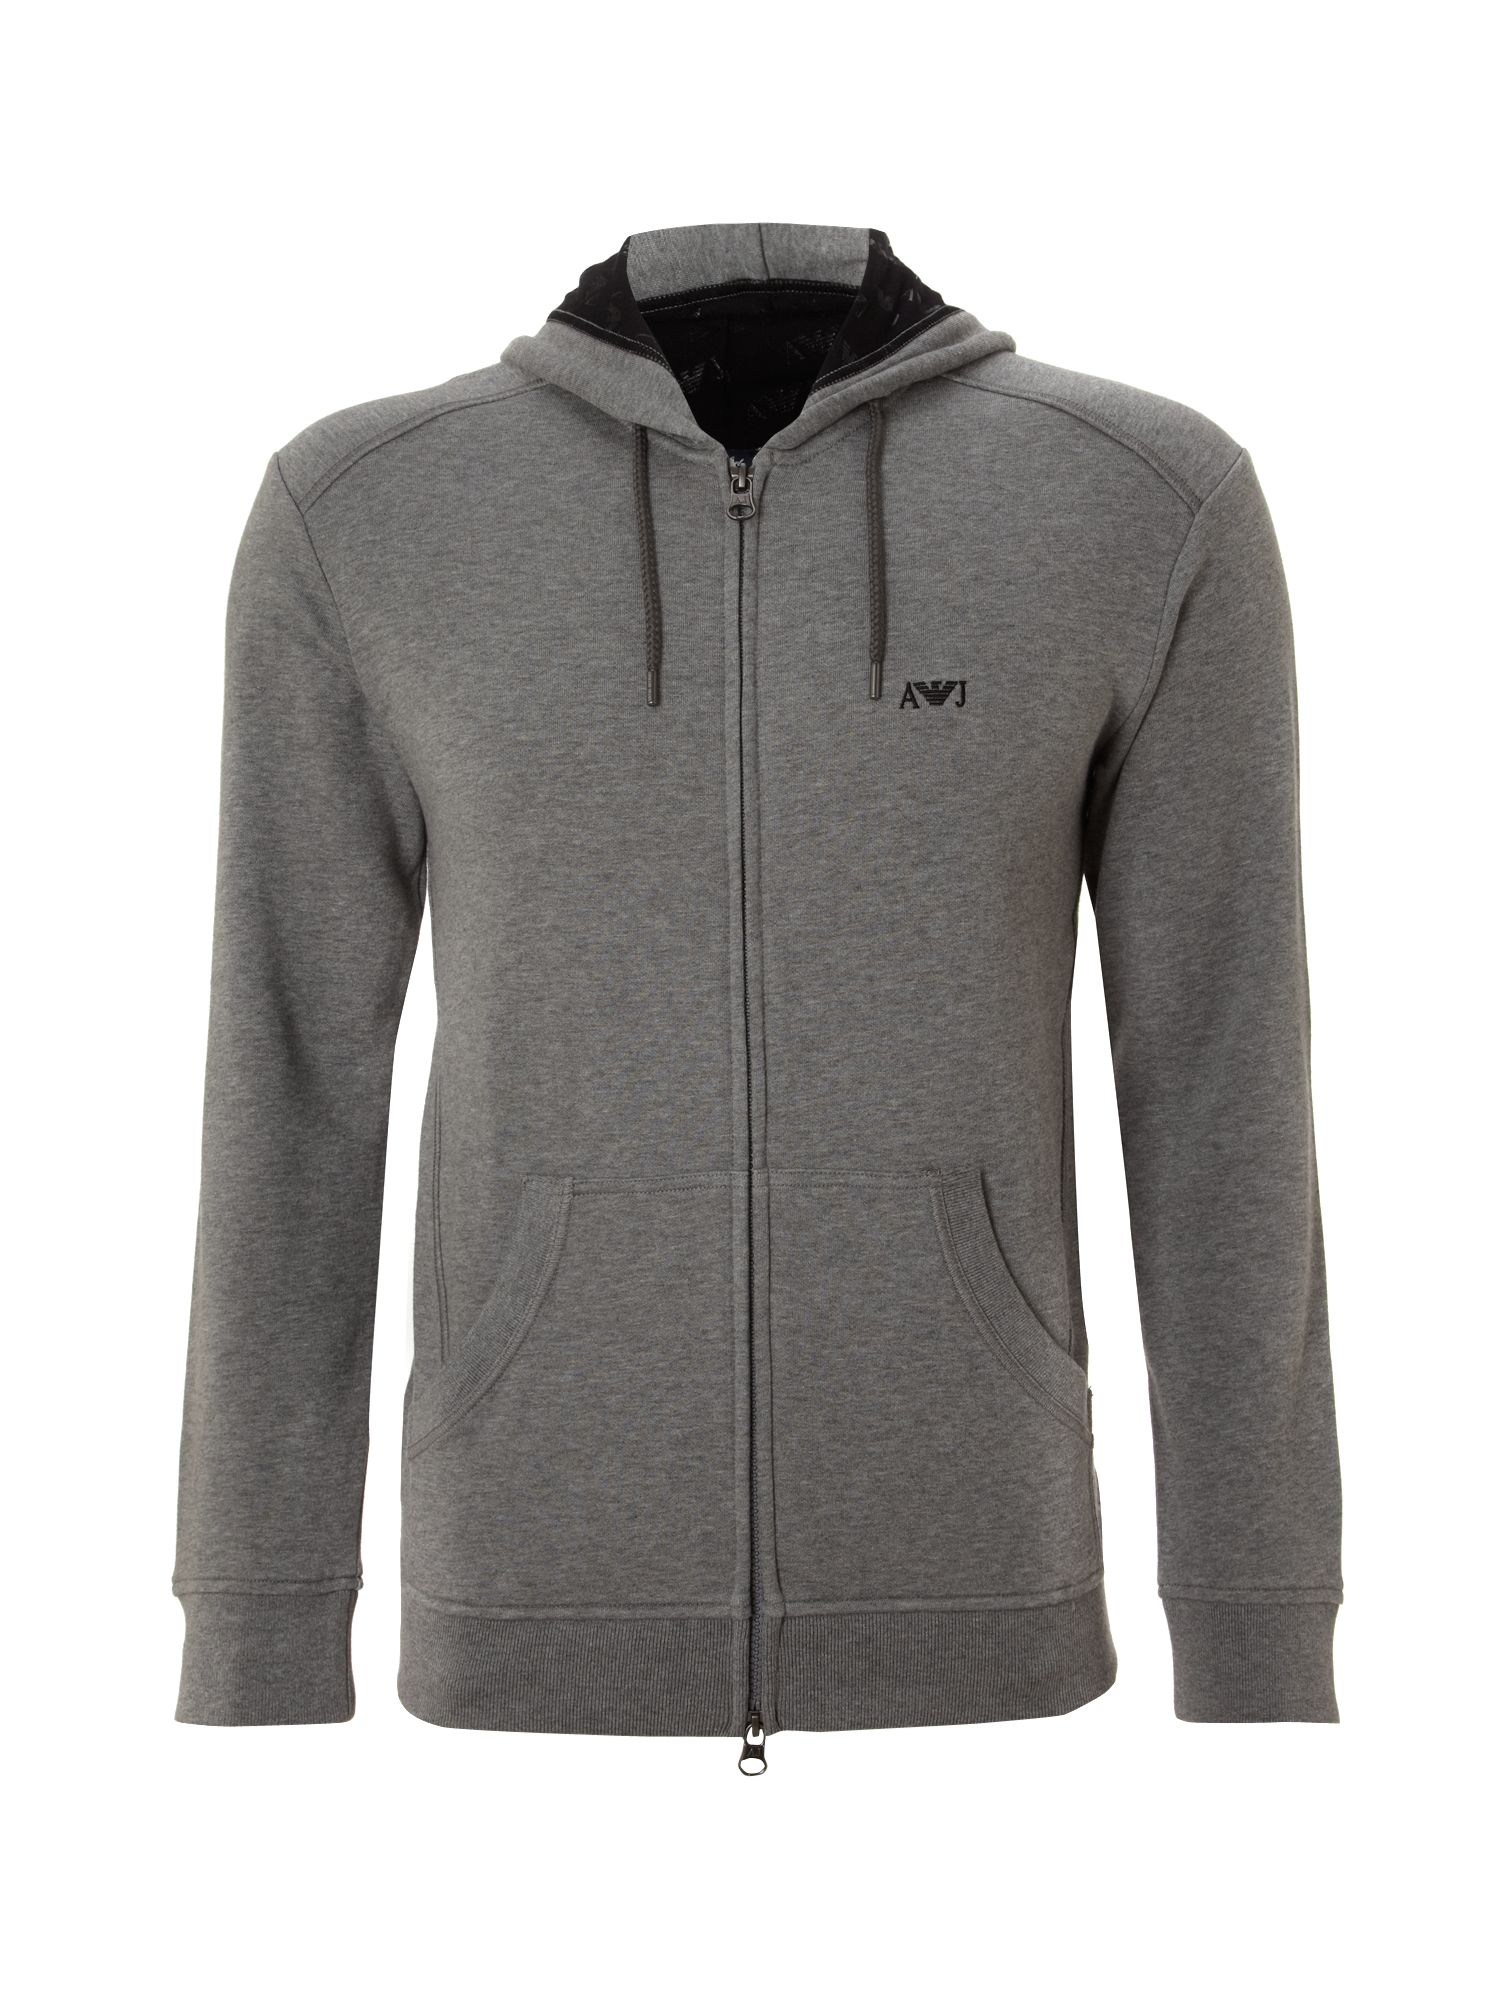 Logo hooded jumper